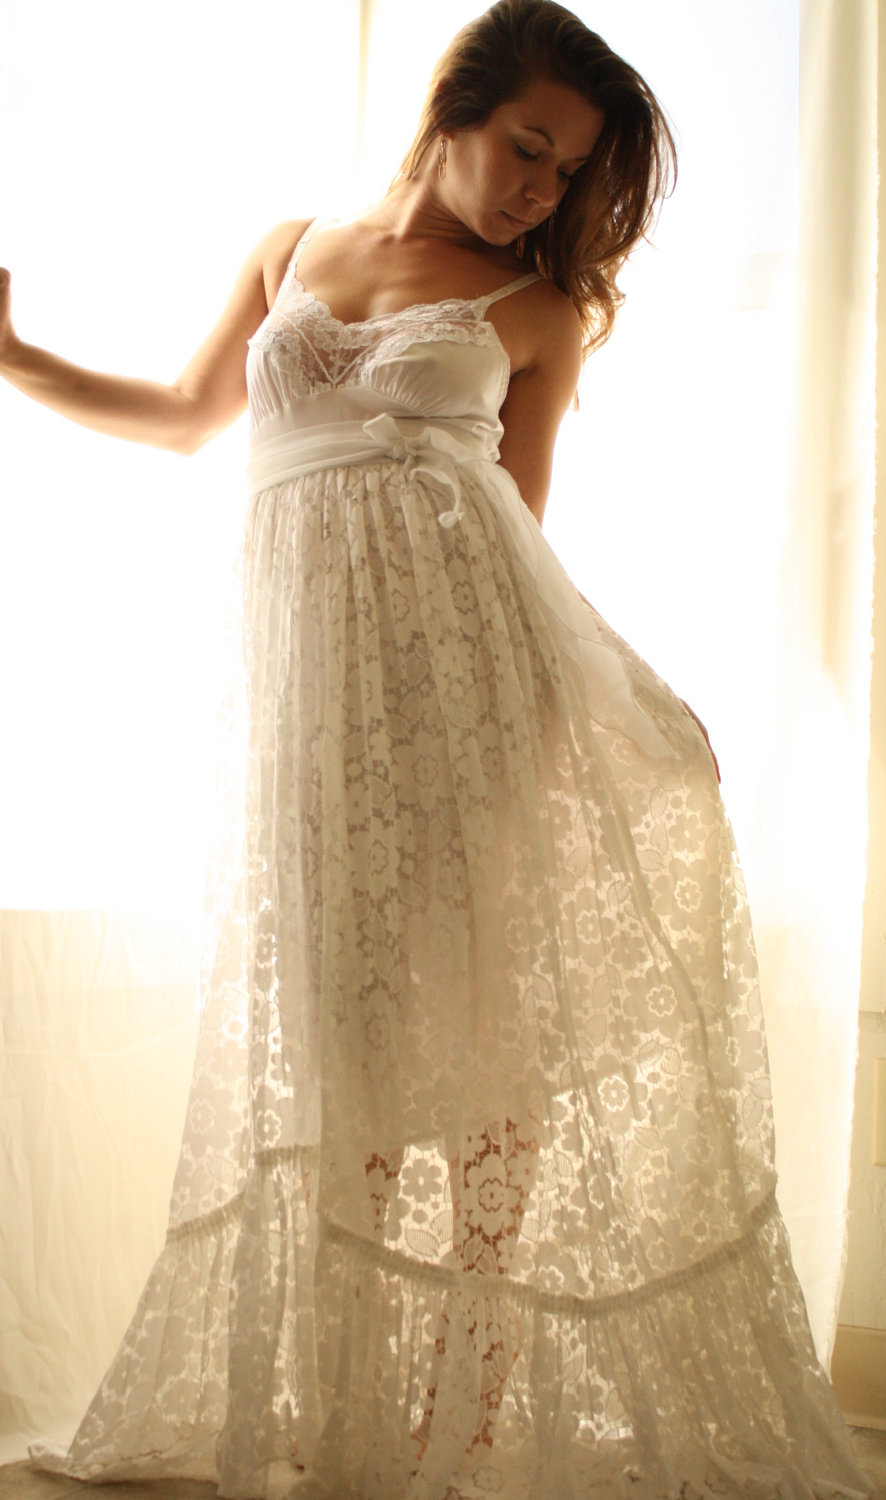 Rustic Romance Beach Wedding Gown In Vintage Lace on Luulla